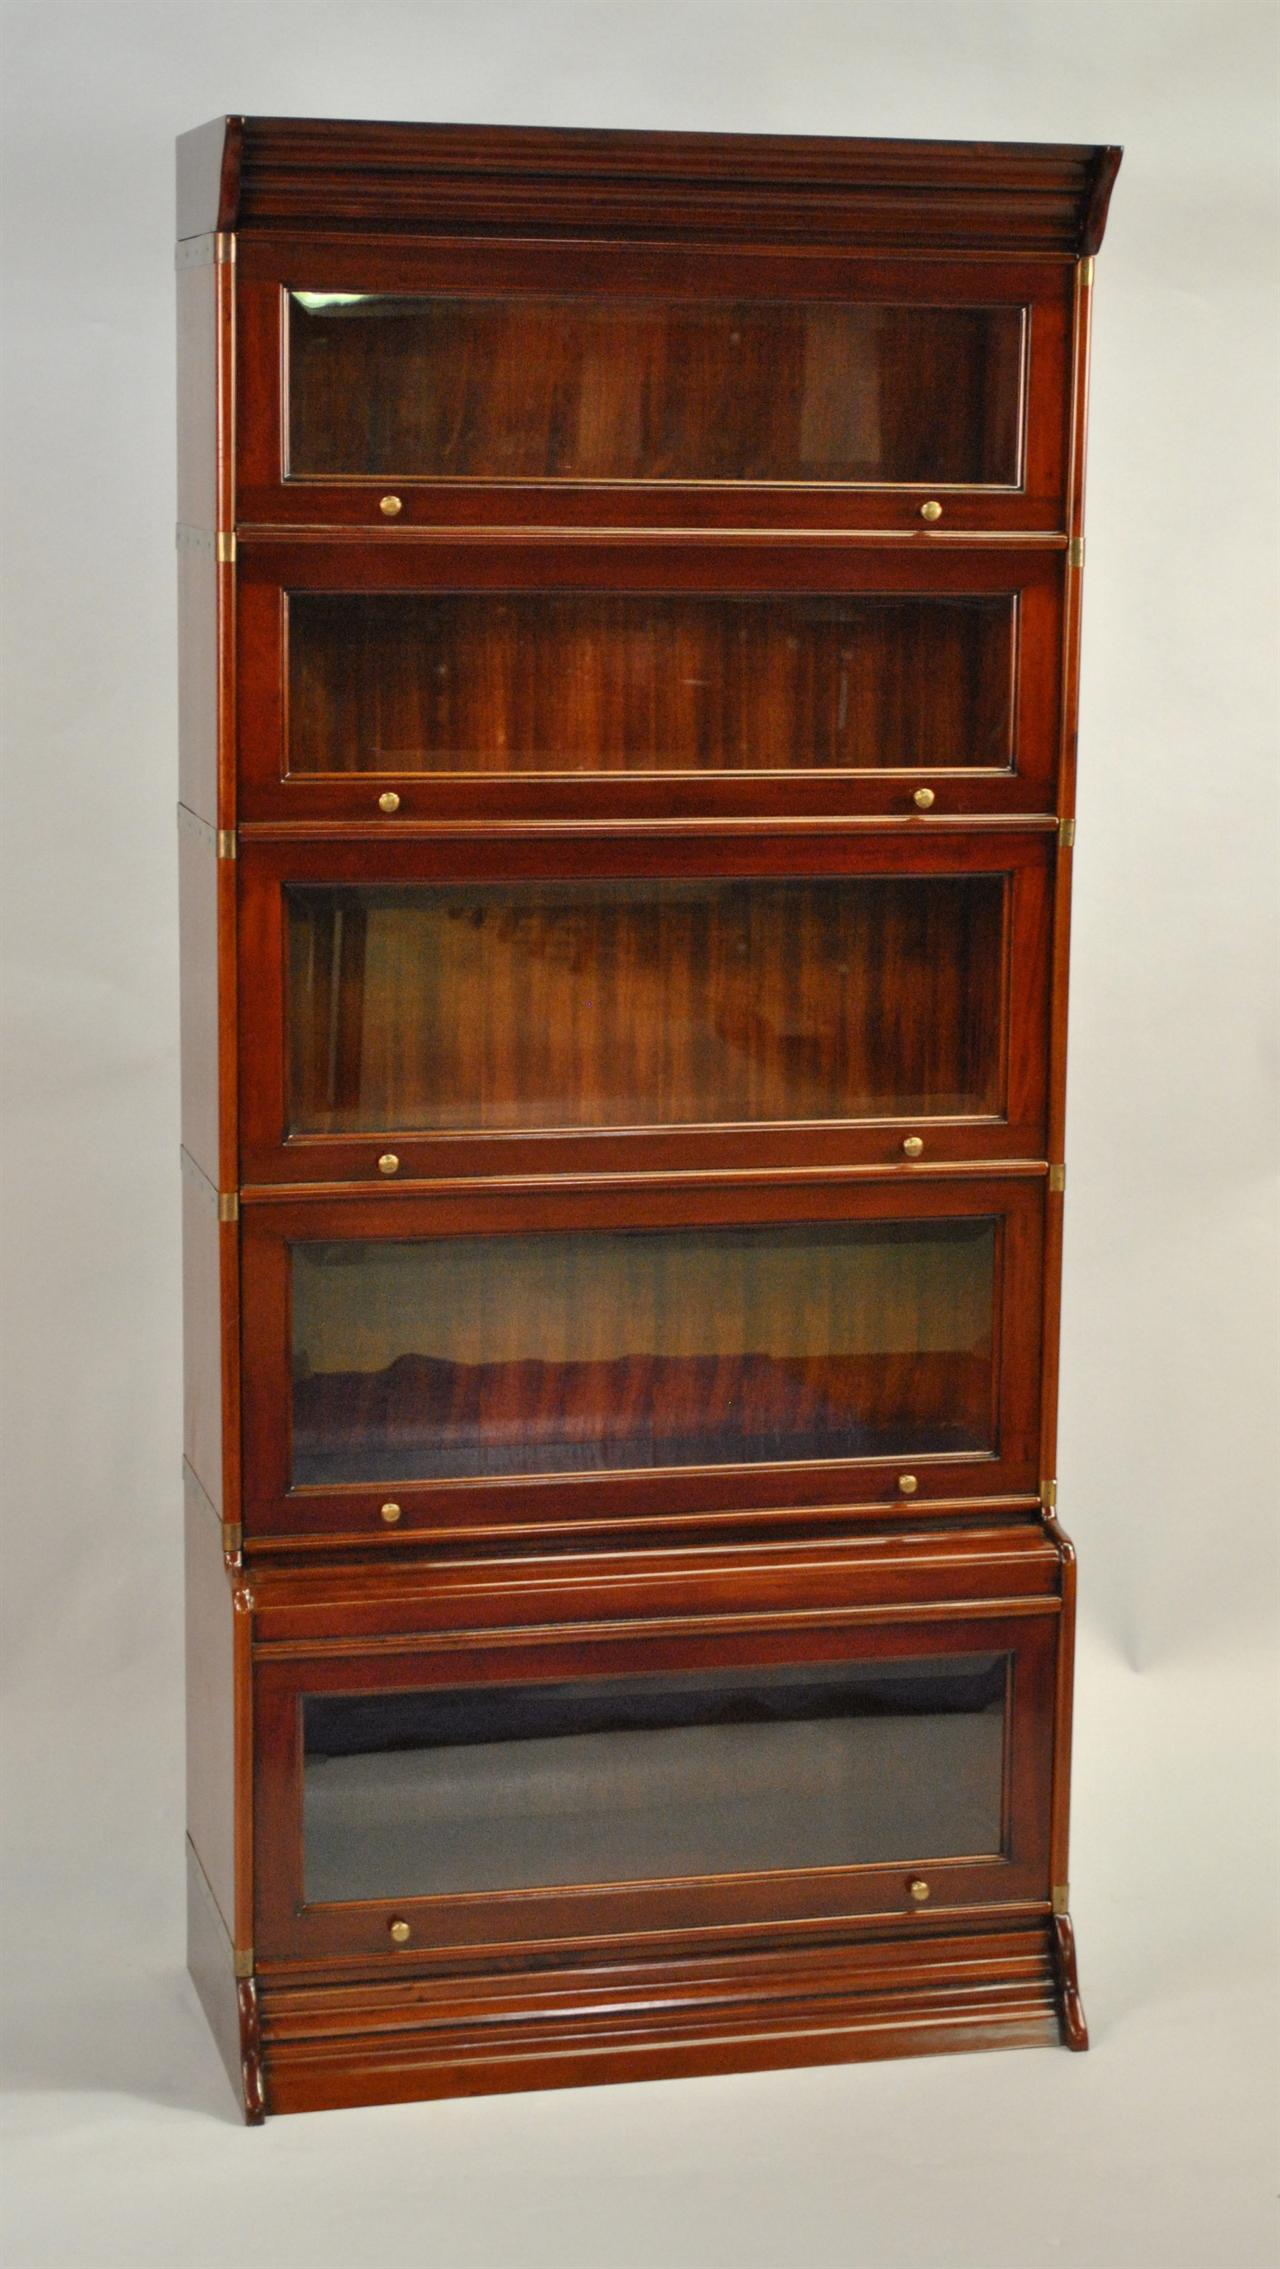 High End Furniture Mahogany And Br Detailed Reproduction Barrister Bookcase